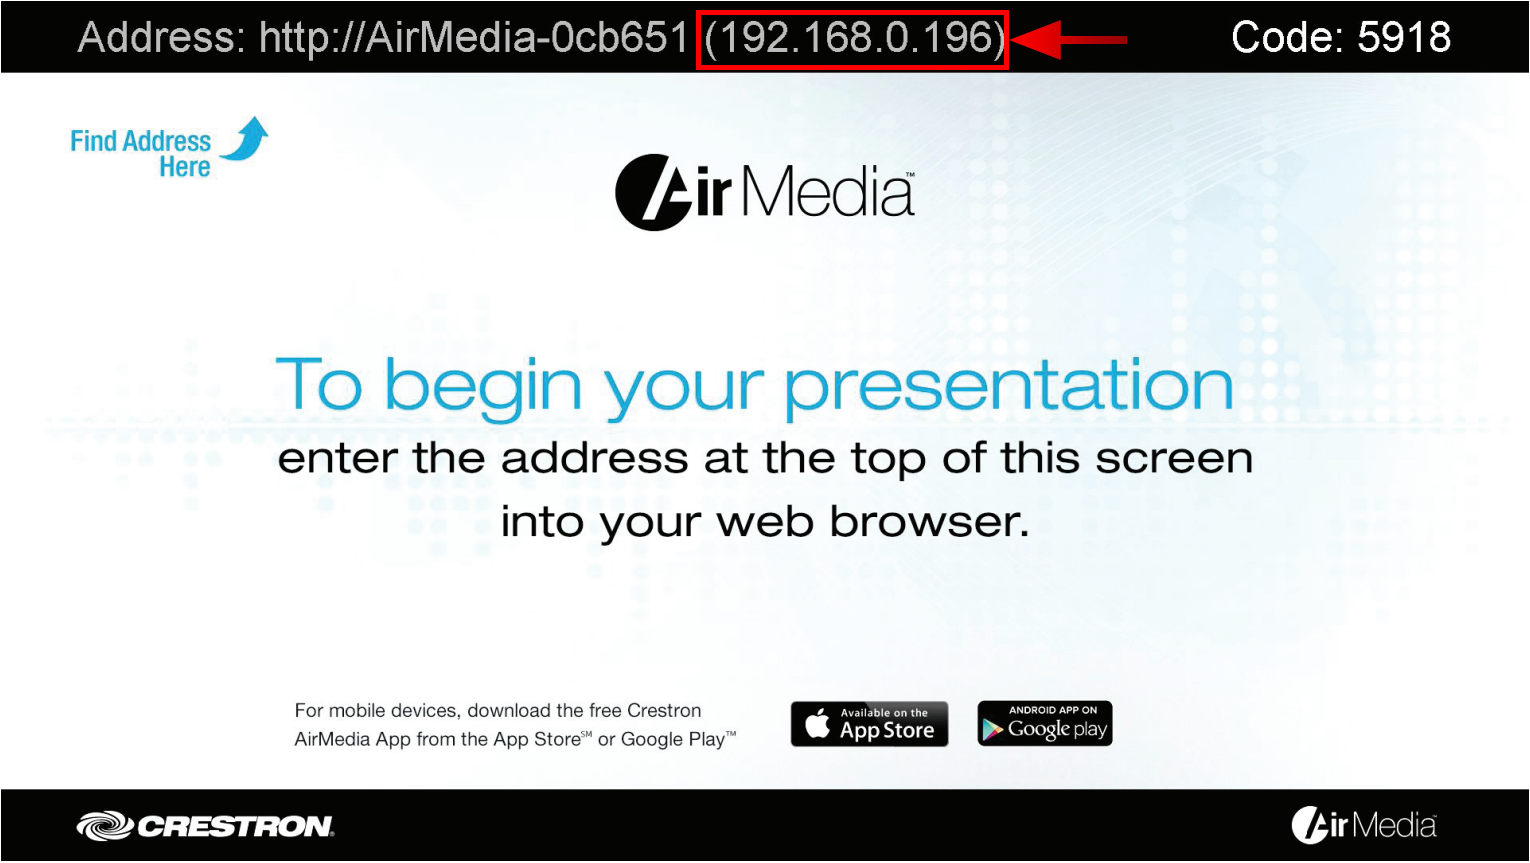 Image of Air Media Welcome screen with the IP address indicated